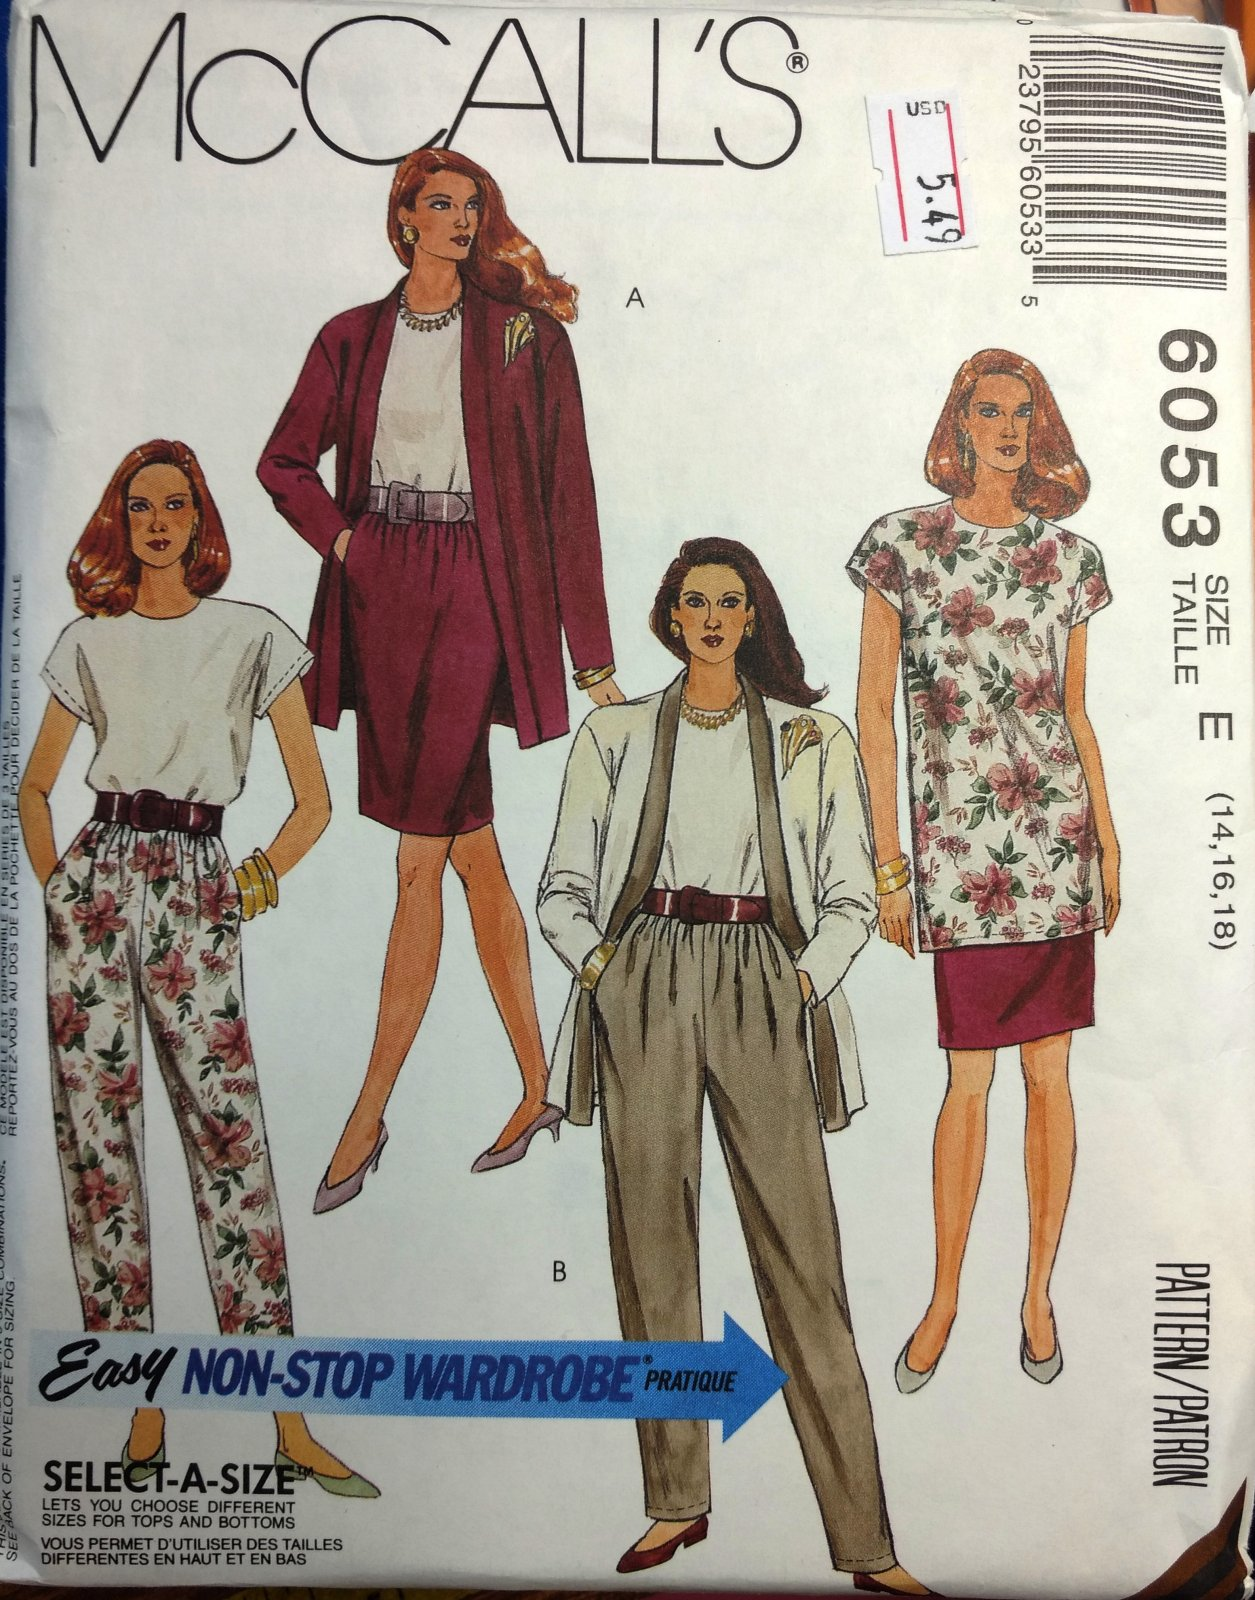 Sewing Pattern EASY NON STOP WARDROBE MISSES SUIT PATTERN McCall's 6053 SIZES 14-16-18